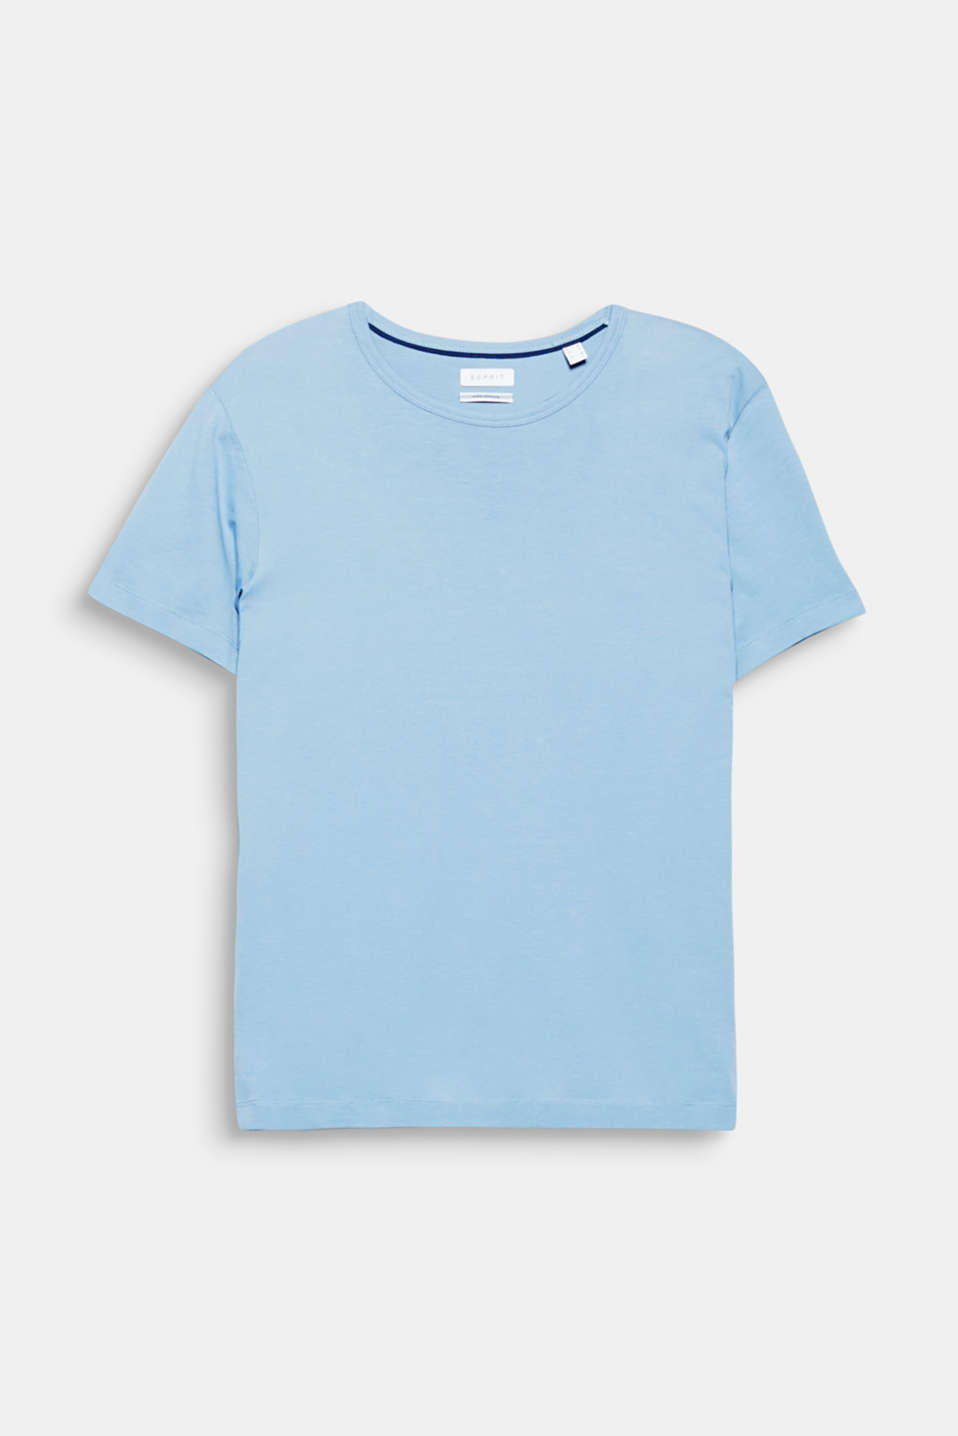 A chic basic and must-have for every wardrobe: T-shirt in fine pima cotton.